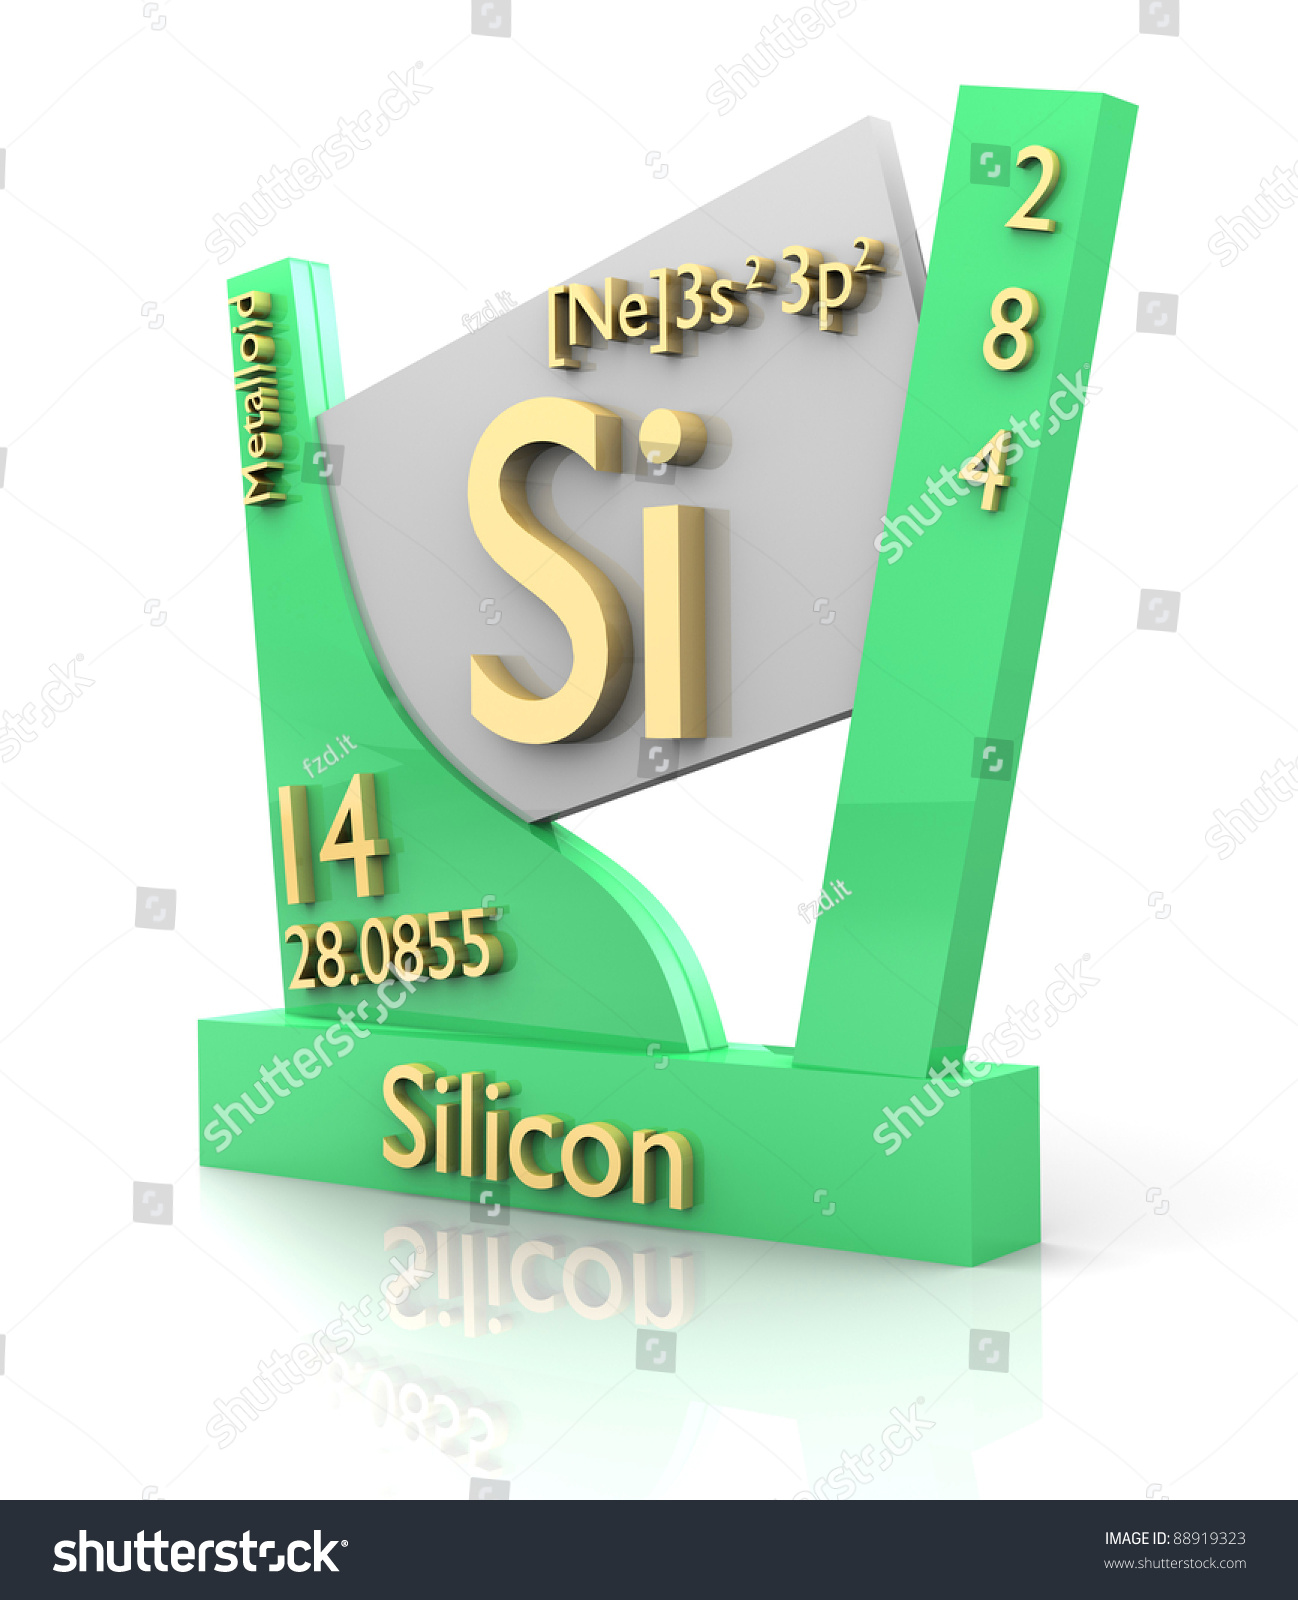 Silicon form periodic table elements 3d stock illustration silicon form periodic table of elements 3d made gamestrikefo Gallery